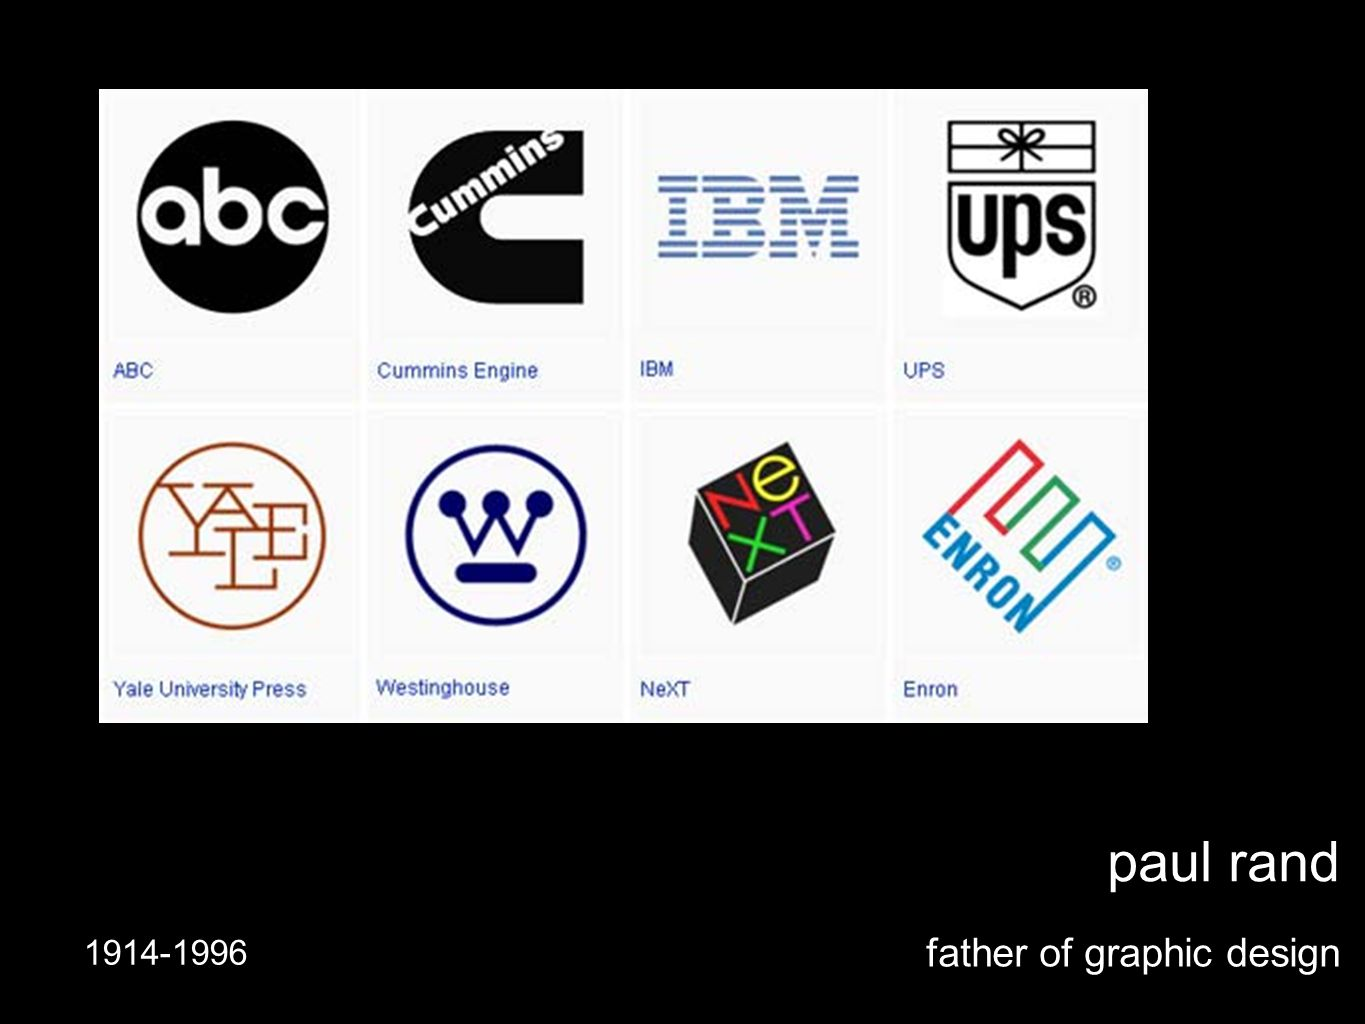 paul rand father of graphic design 1914-1996